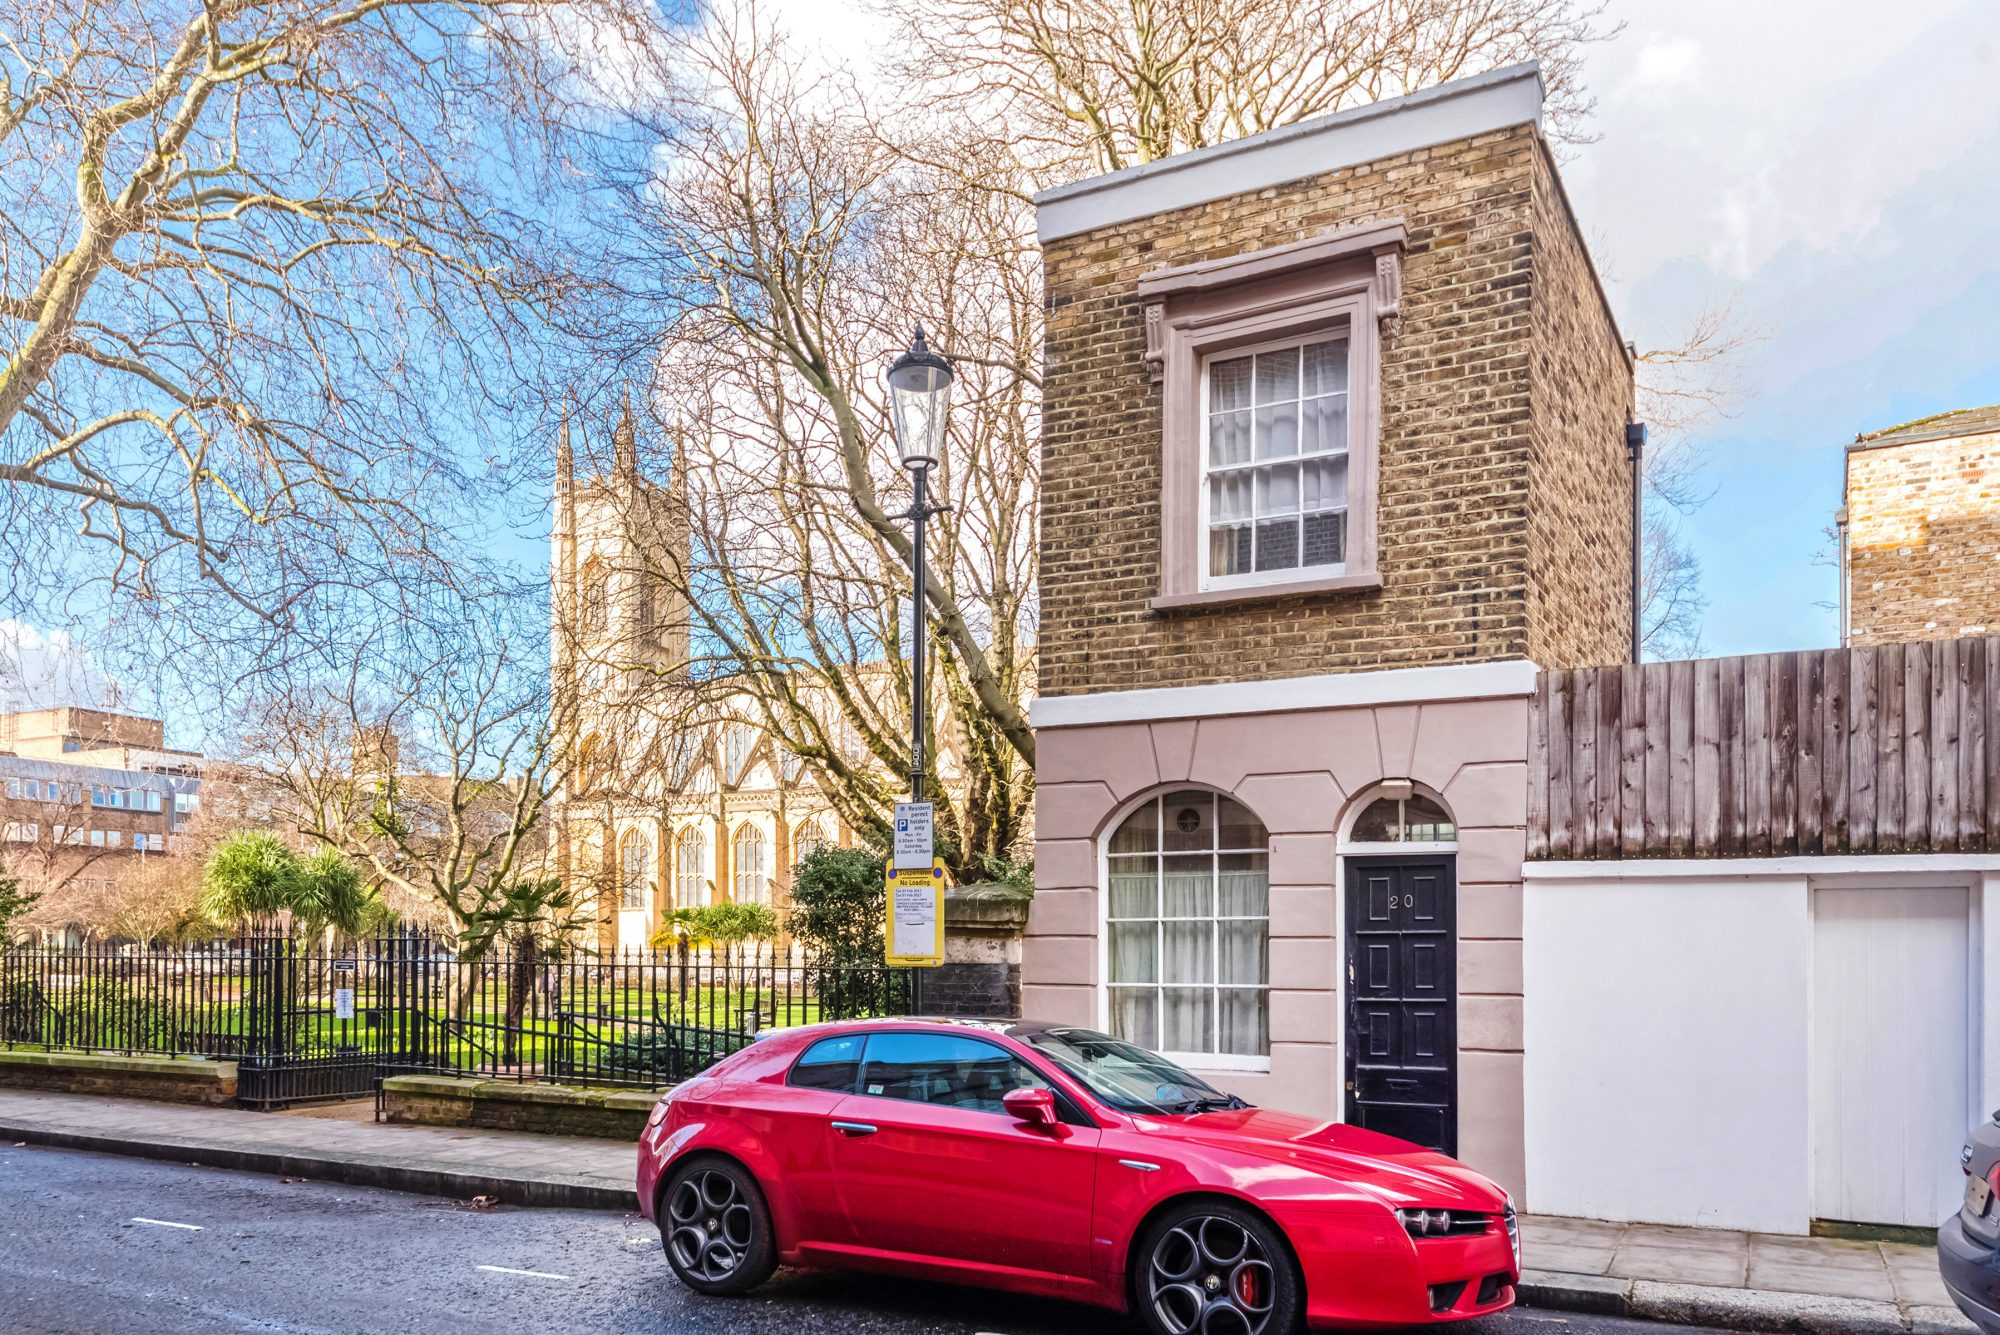 Even One of London's Smallest Houses Still Costs $750,000